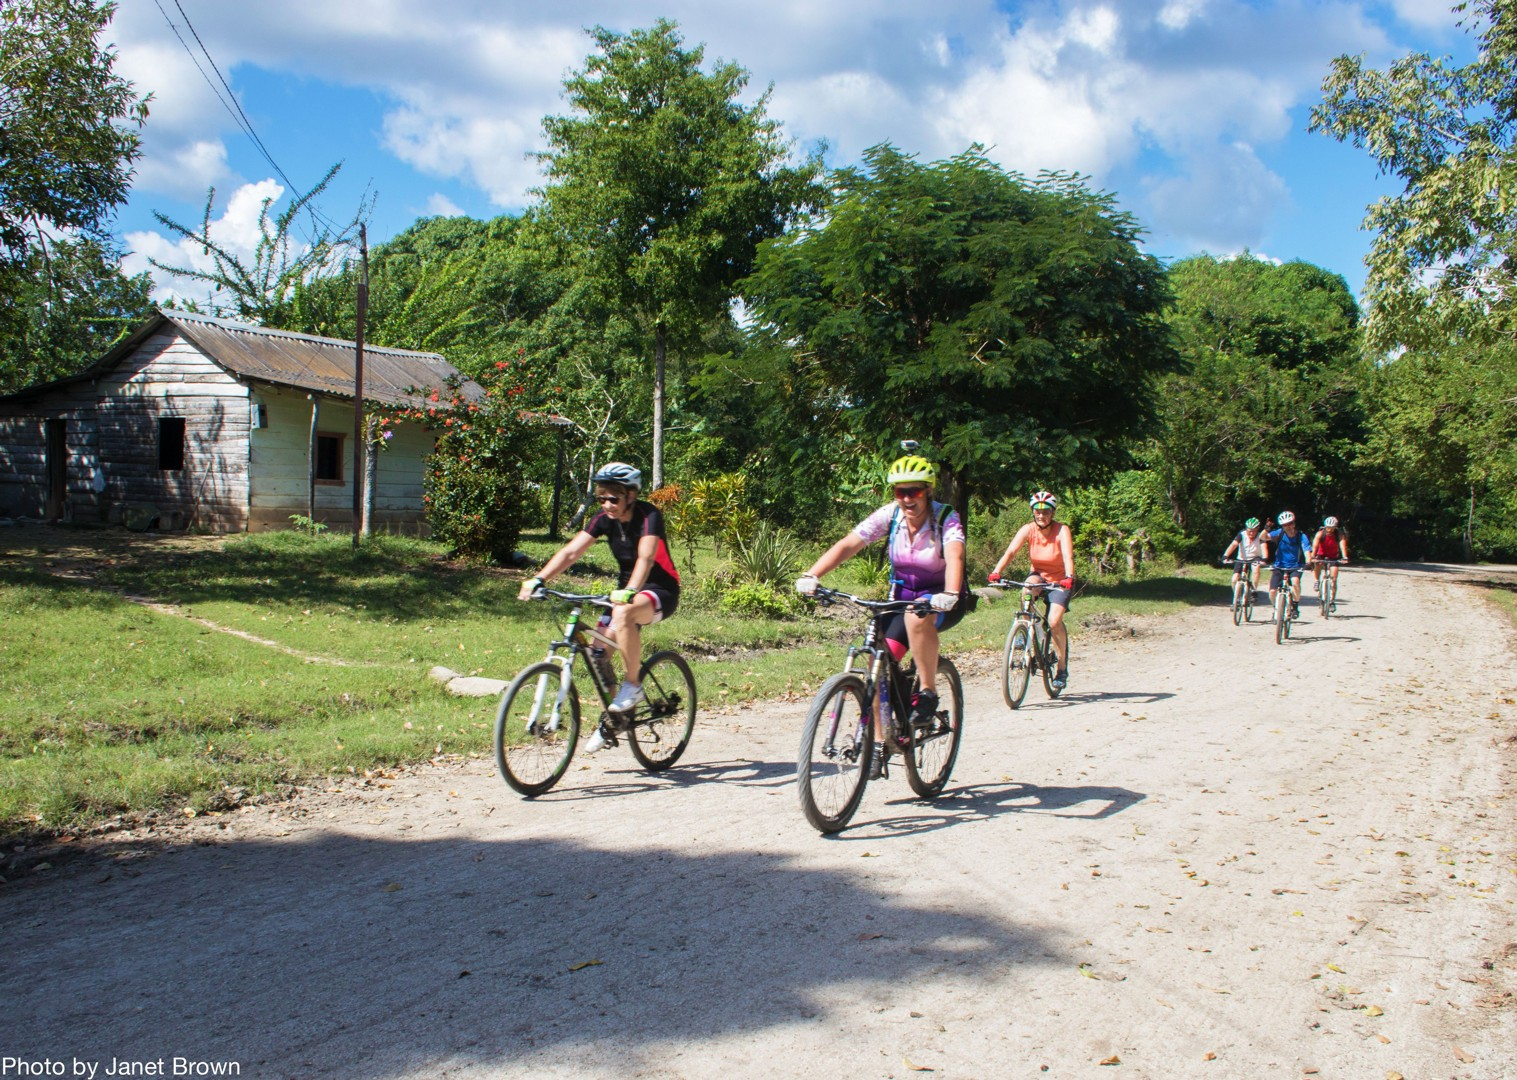 _Customer.145239.37315.jpg - Cuba - Cuban Wheels - Cycling Adventures